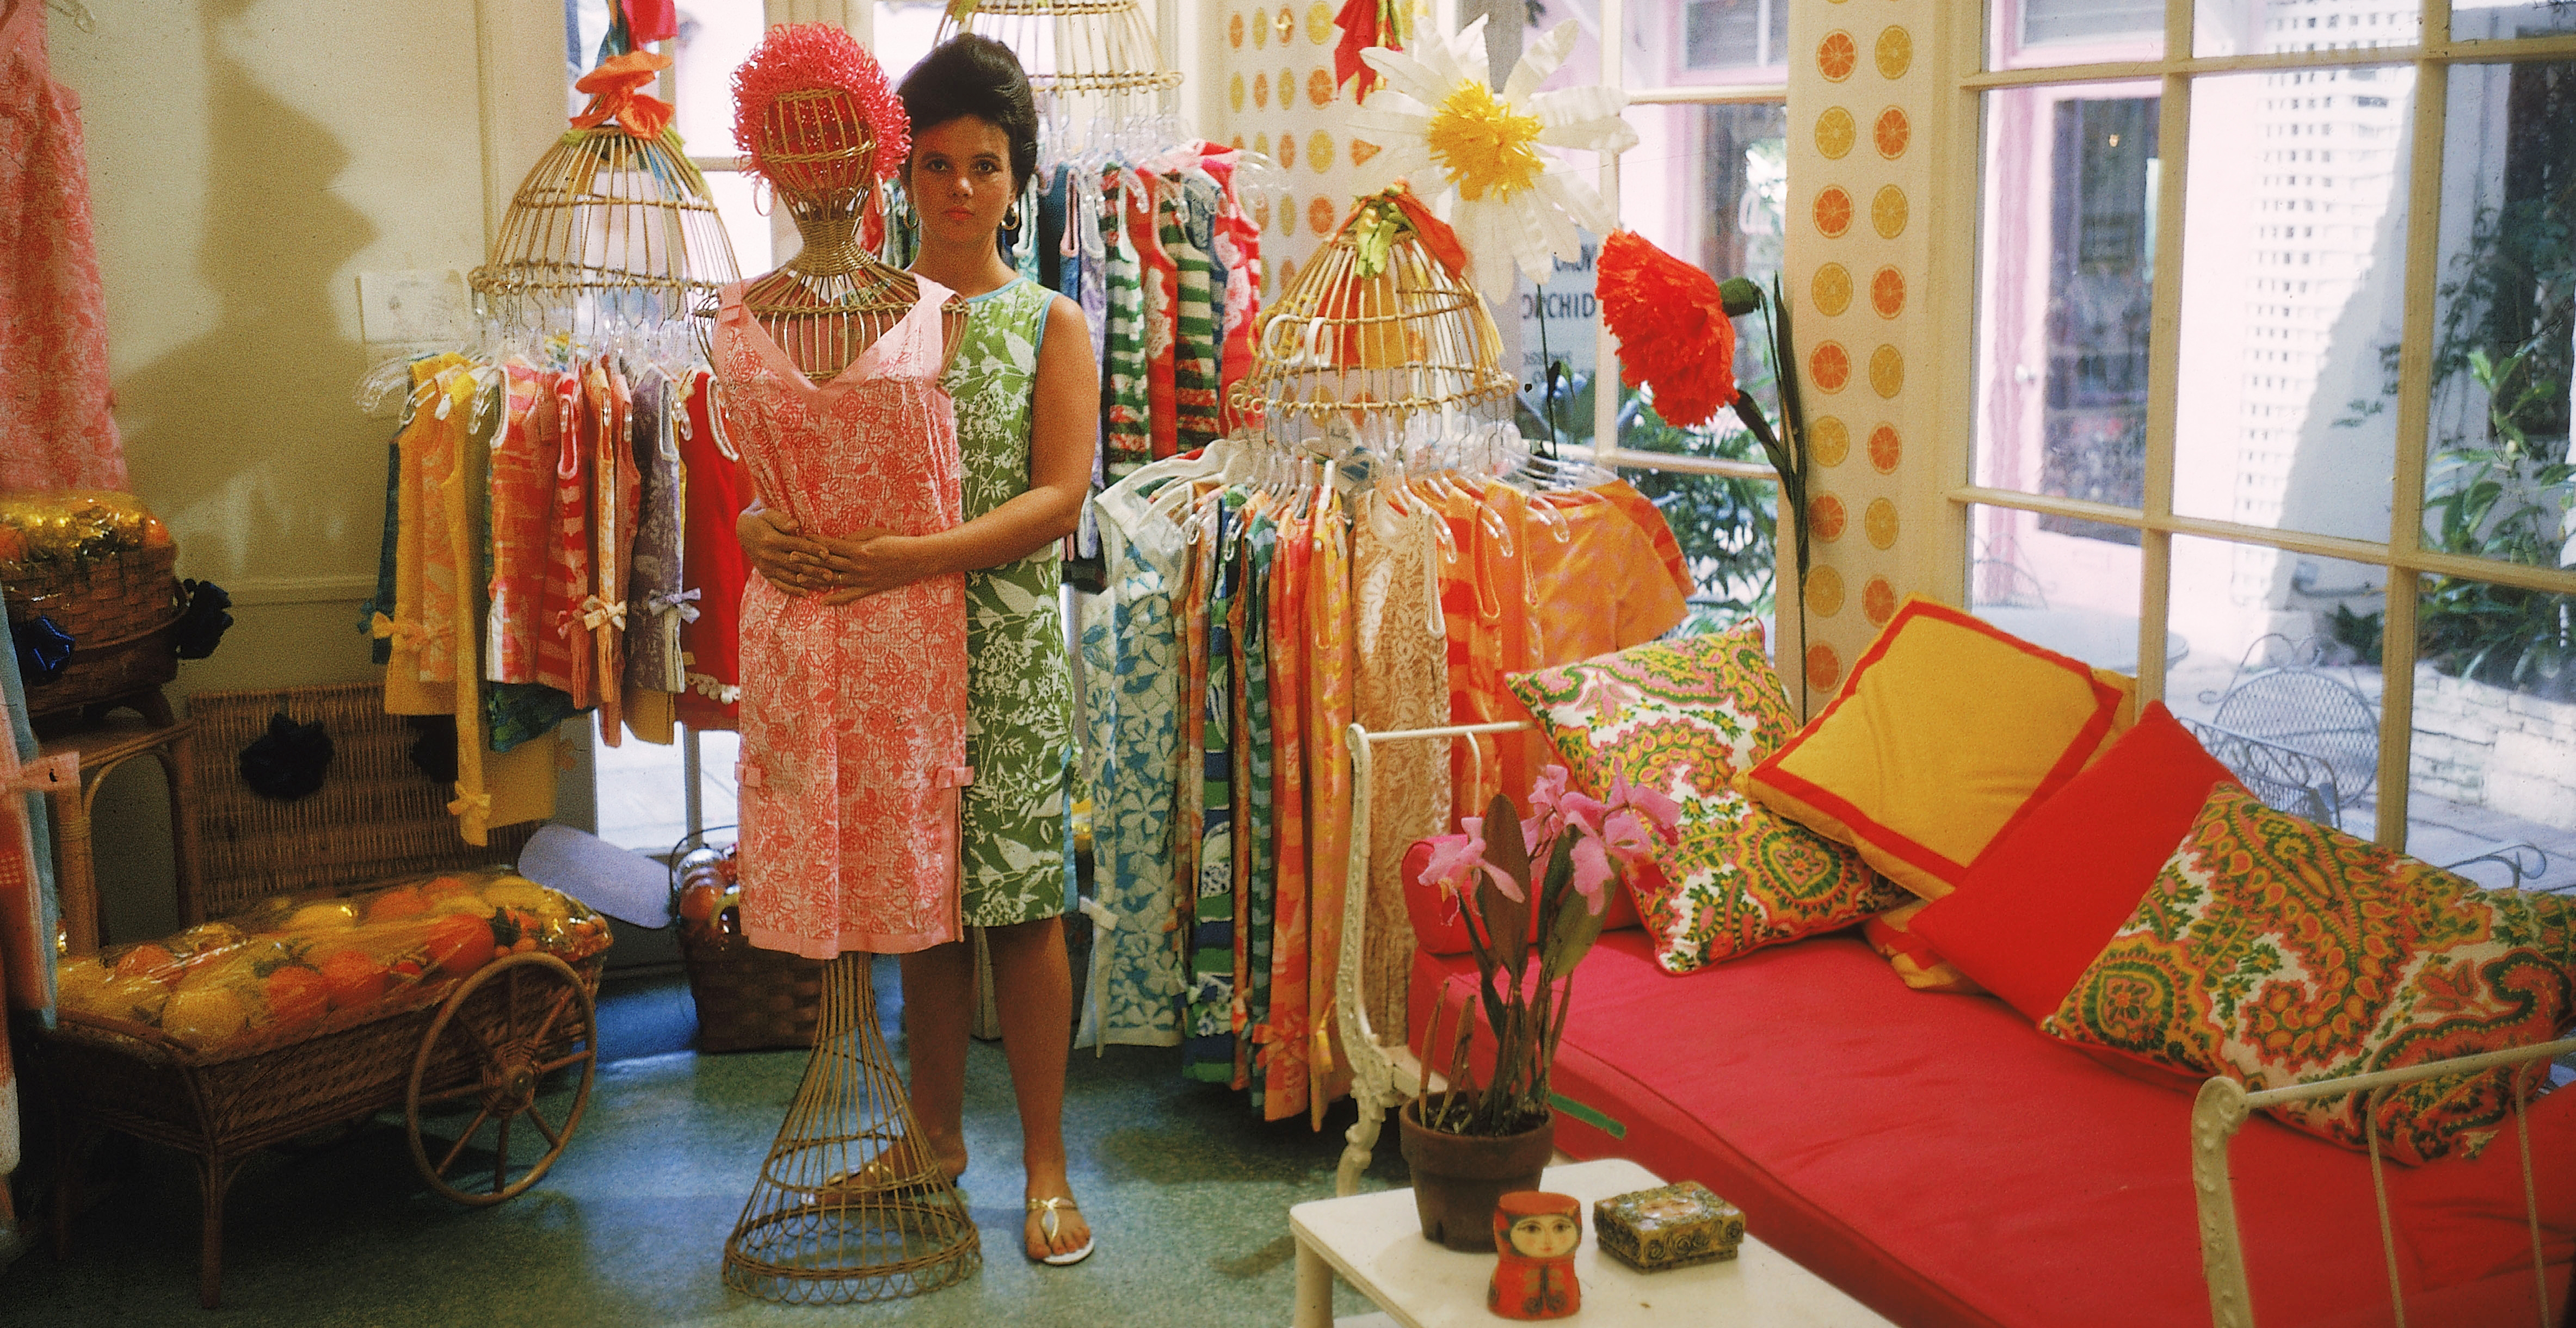 36d033c9c8d357 Lilly Pulitzer® Honors the Life of Founder, Lilly Pulitzer Rousseau |  Business Wire